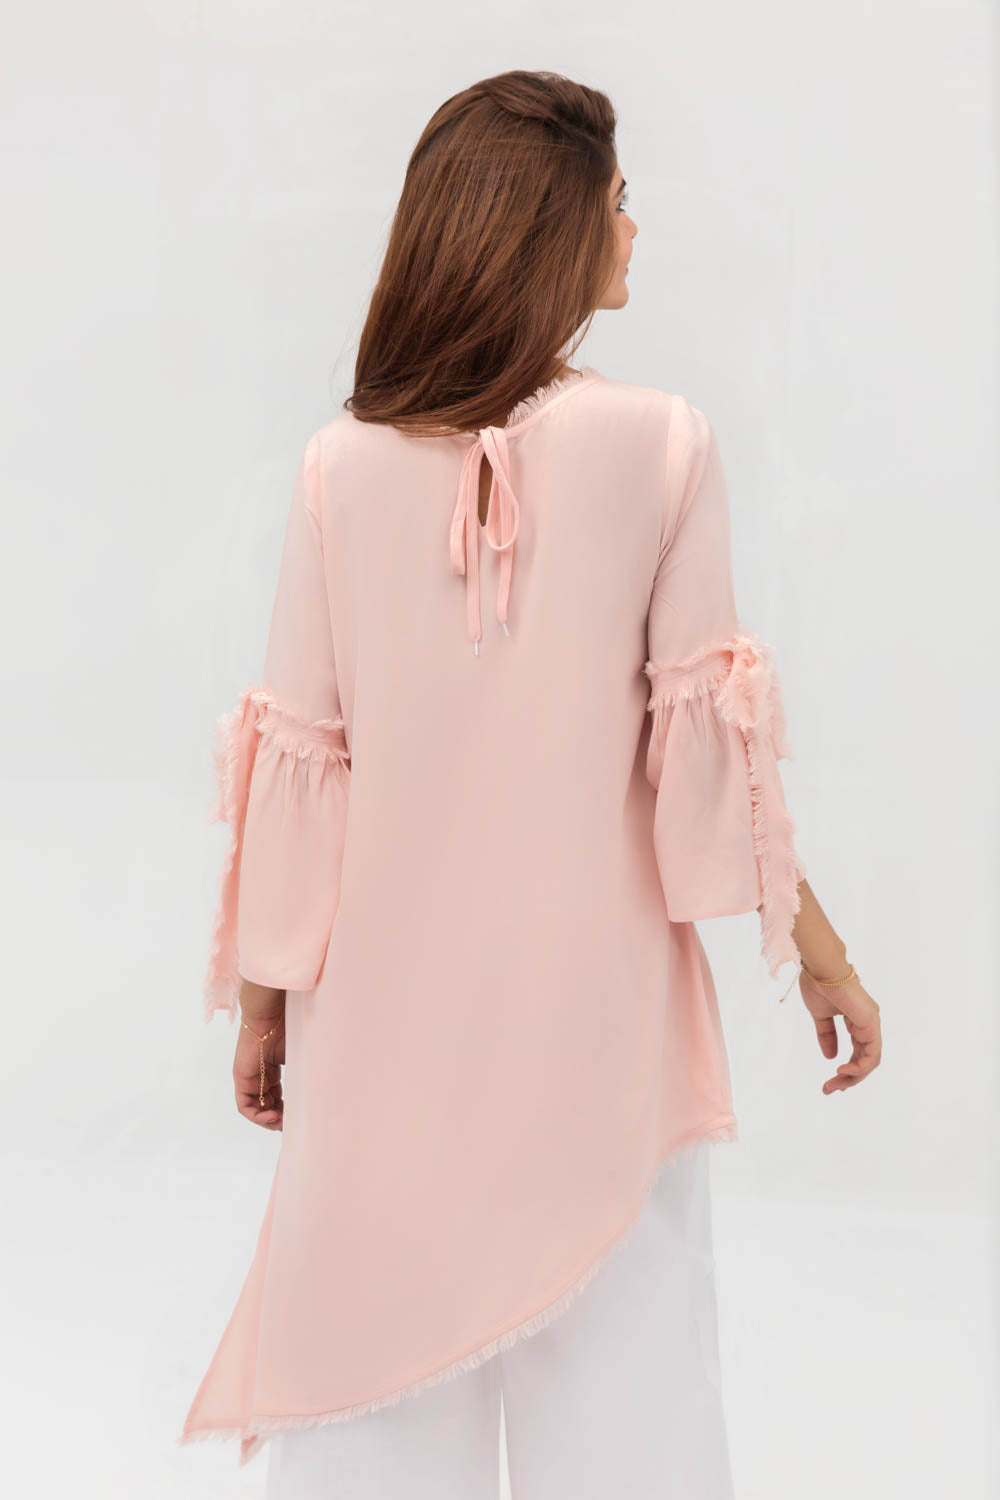 Pink Side Down Long Shirt In Crepe Fabric With Long Length - yesonline.pk